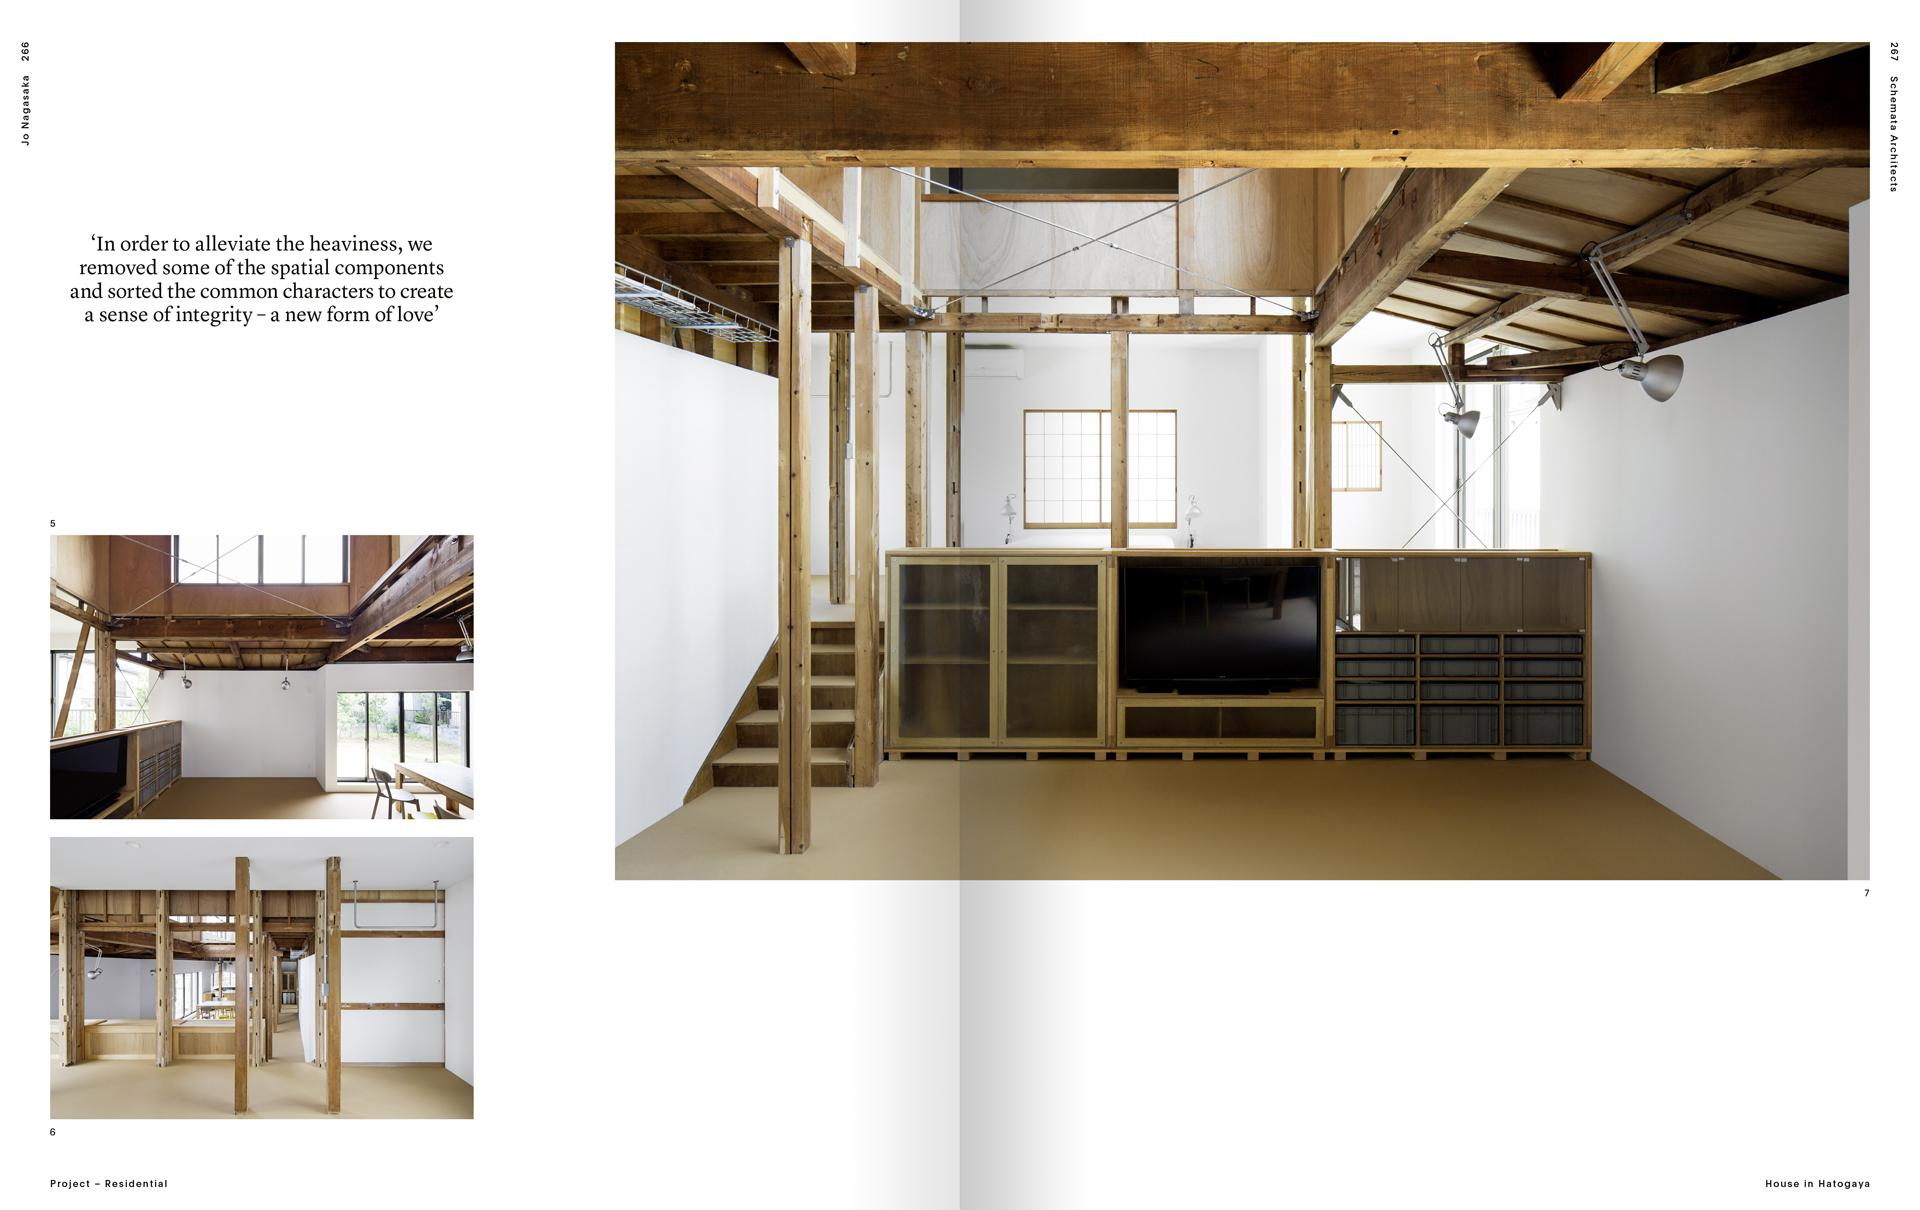 Frame Jo Nagasaka Describes The Design Process Of Schemata Architects In His New Book,Inspiration Graphic Design Book Covers